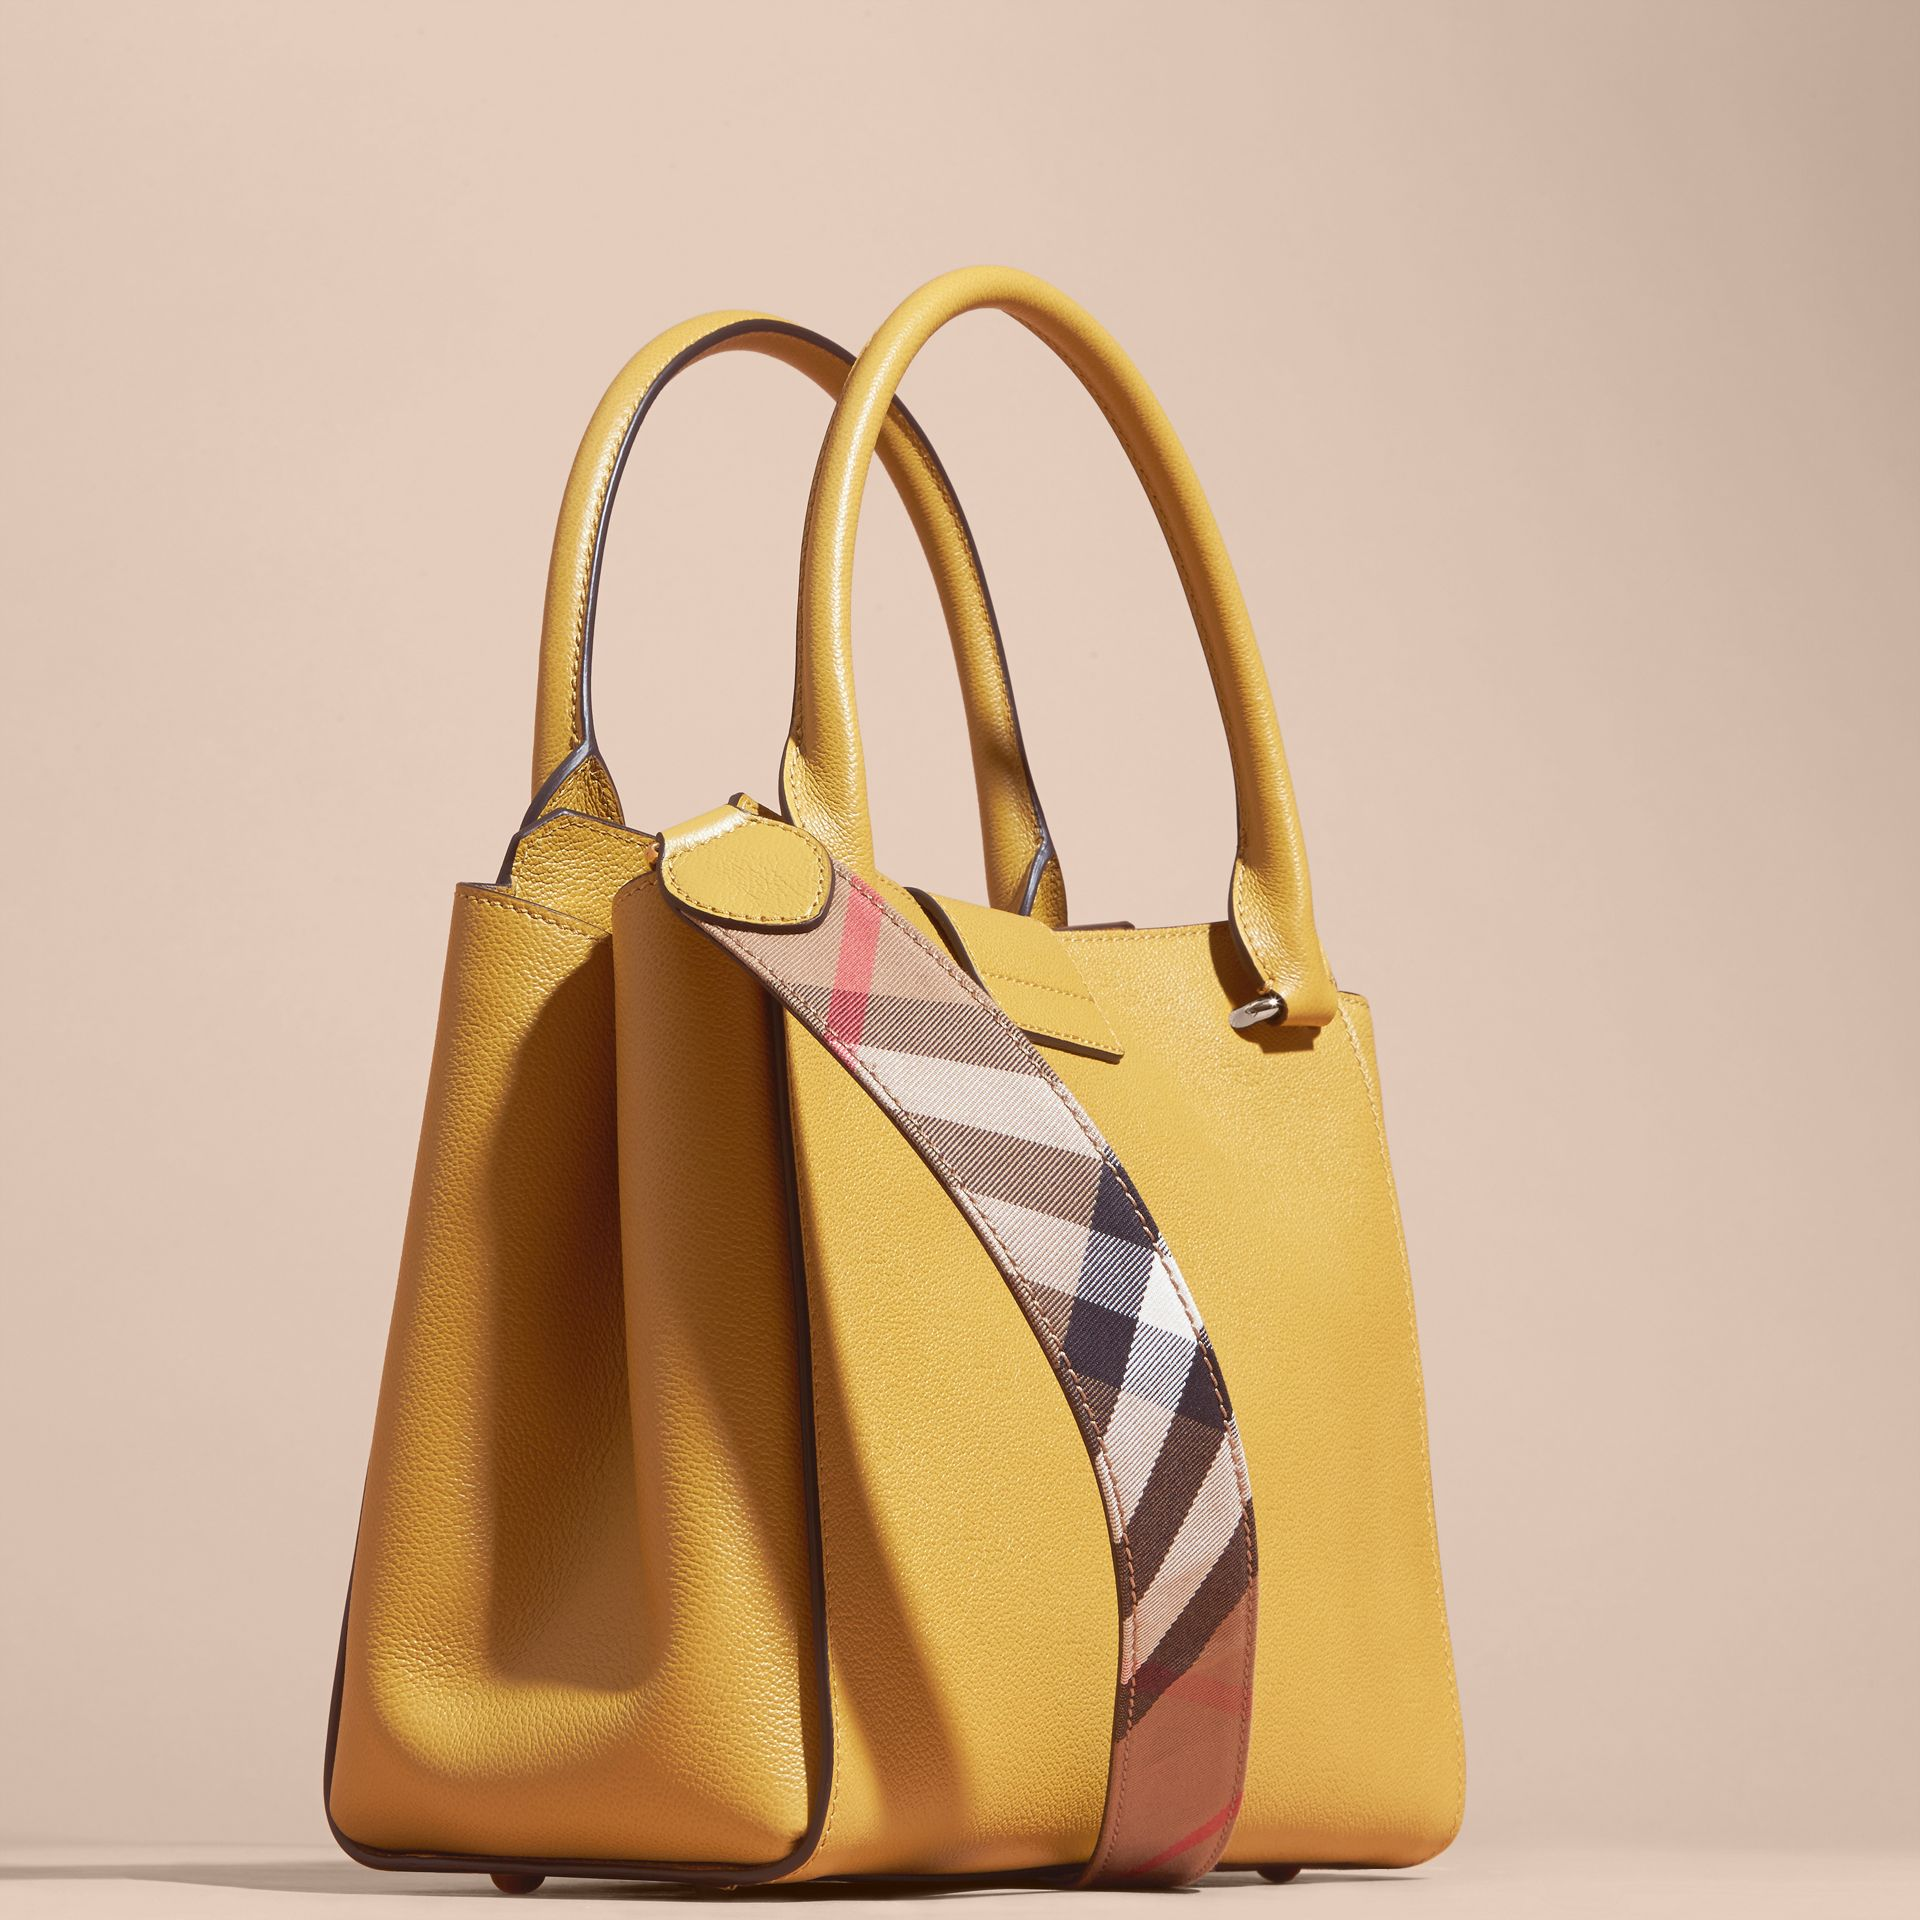 Quartz jaune Sac tote The Buckle medium en cuir grené Quartz Jaune - photo de la galerie 5